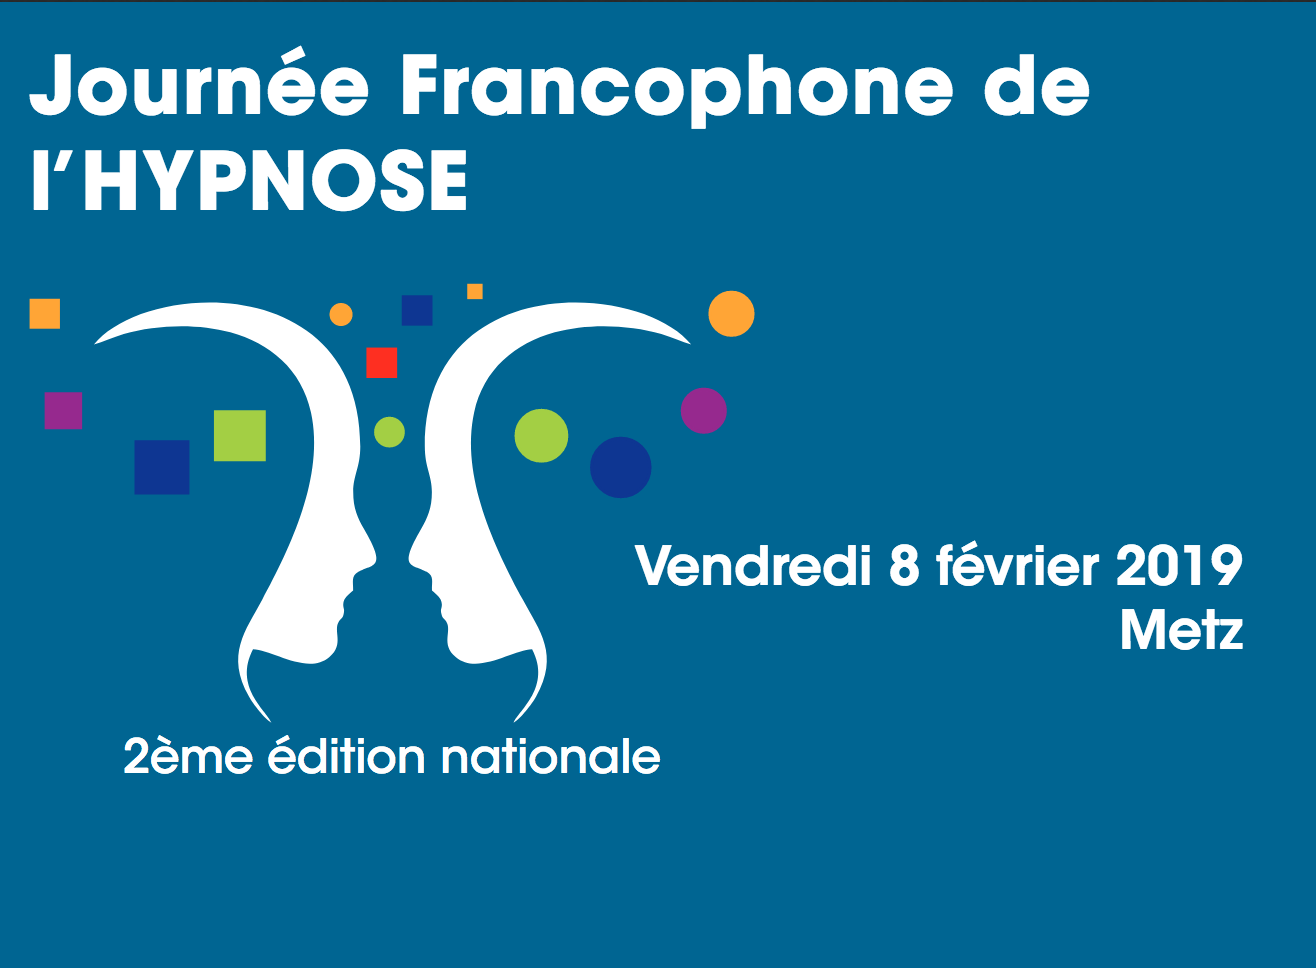 L'HYPNOSE INTEGRATIVE : NEUROPHYSIOLOGIE, CLINIQUE ET THERAPIES COMPLEMENTAIRES